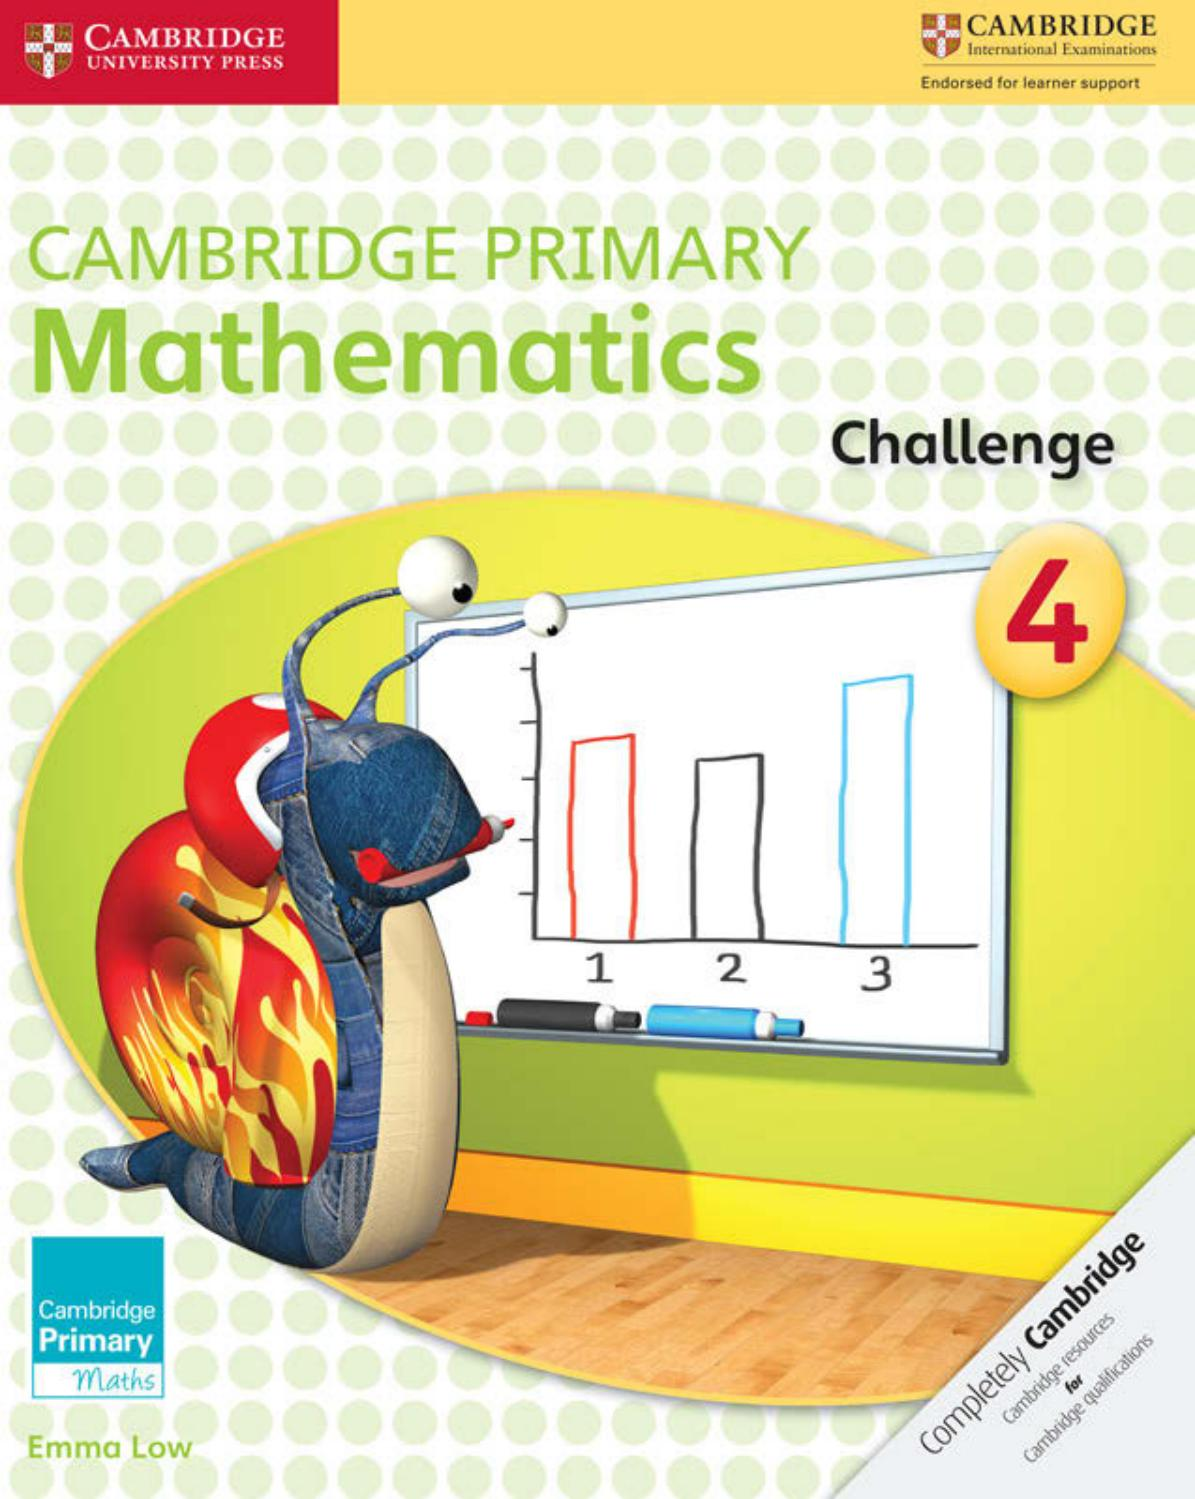 hight resolution of Preview Cambridge Primary Mathematics Challenge 4 by Cambridge University  Press Education - issuu